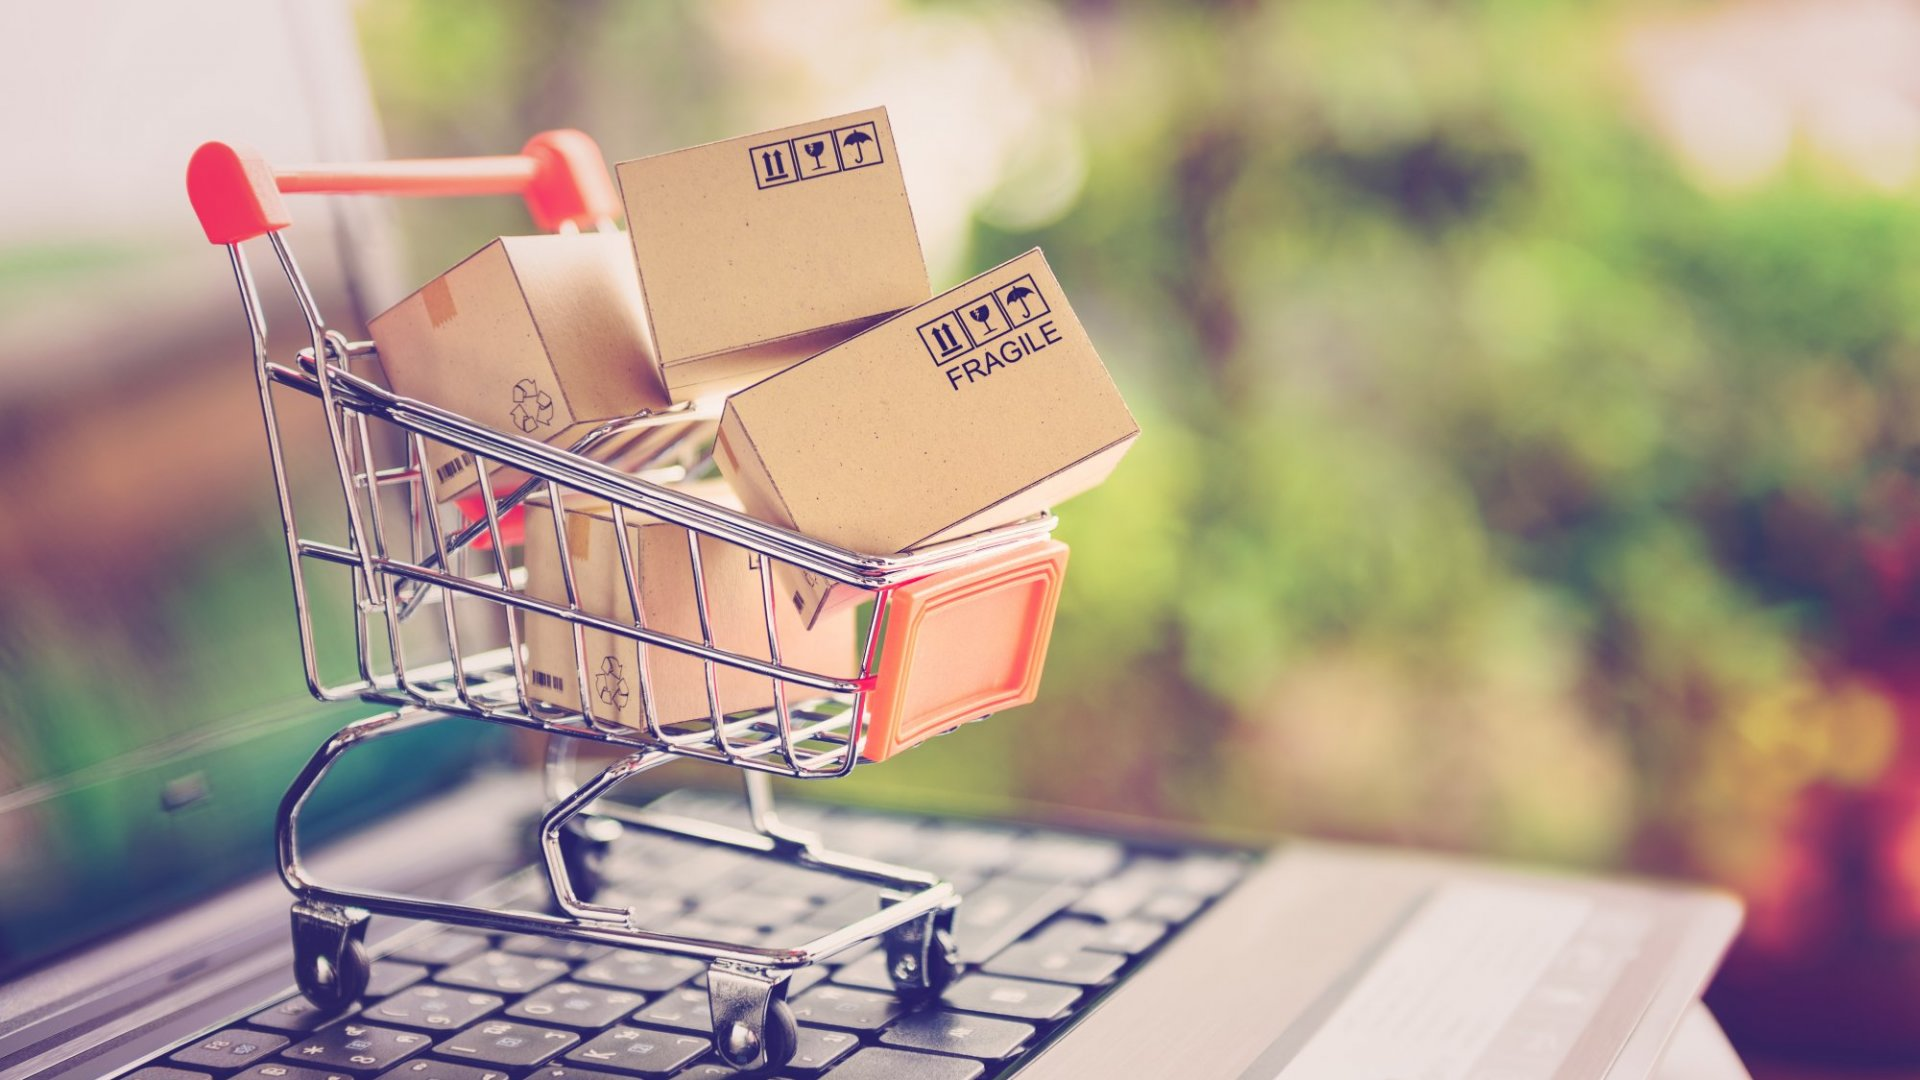 4 Ways to Capture More Sales During Slower Shopping Seasons